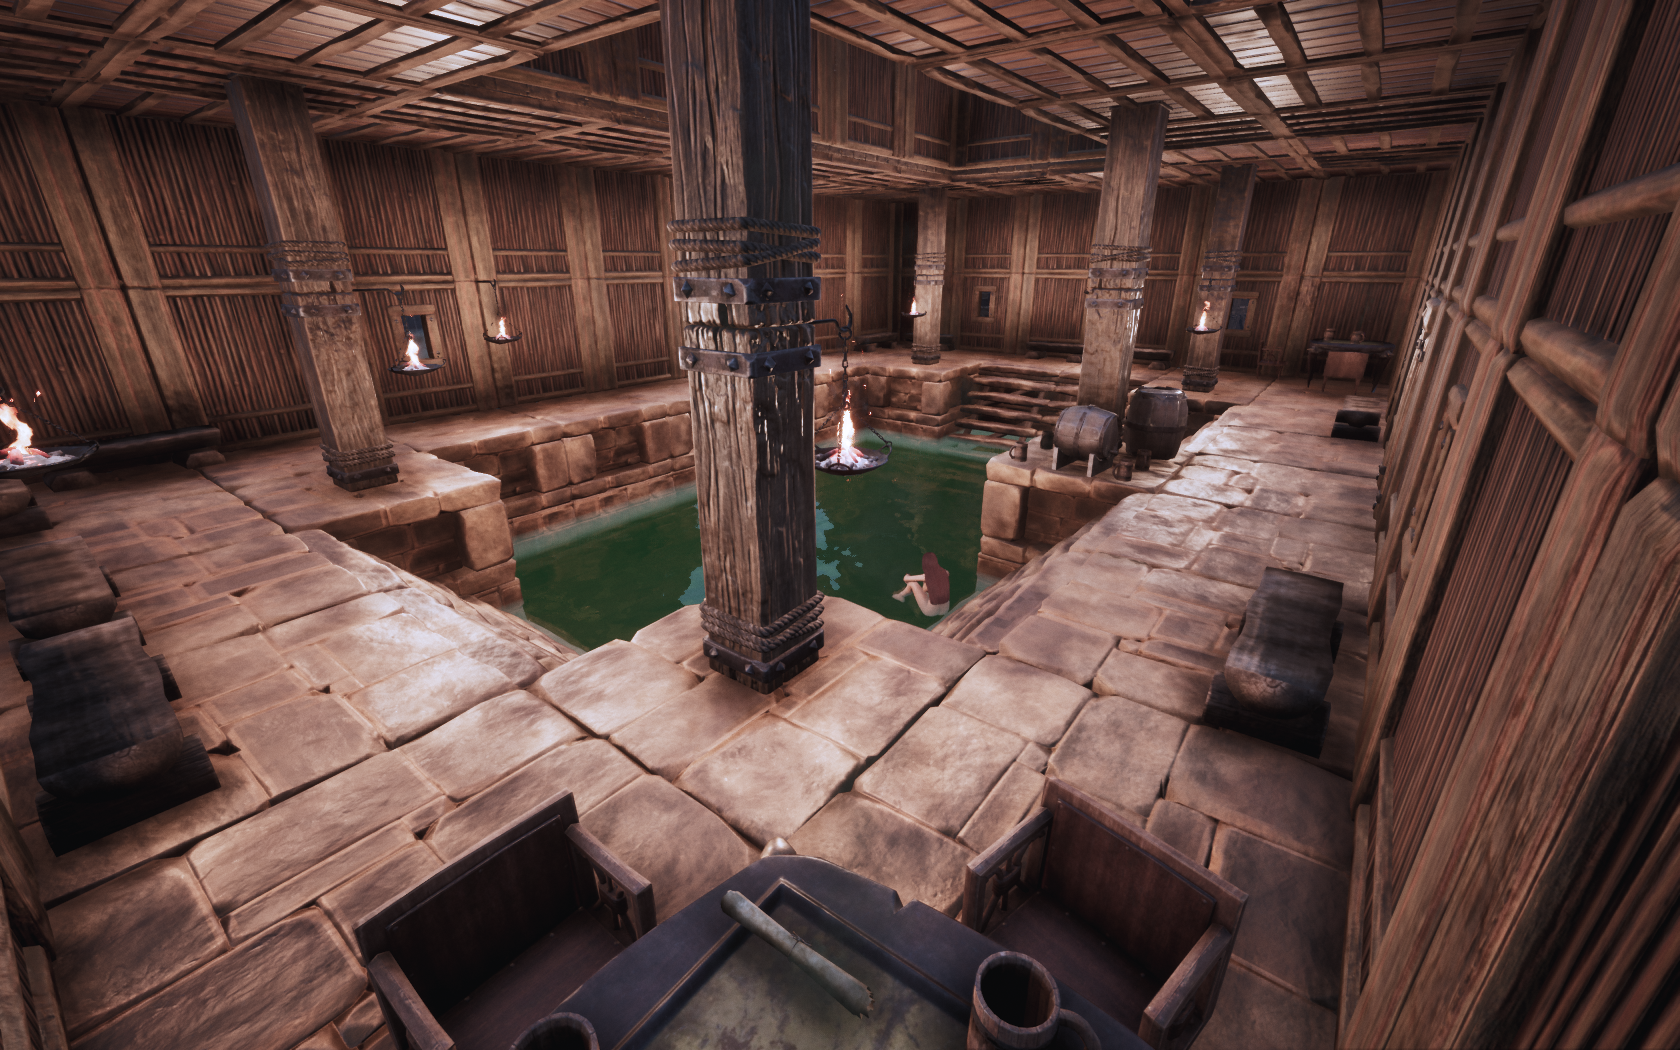 Conan_Exiles_Screenshot_2018.06.08_-_15.48.29.72.png